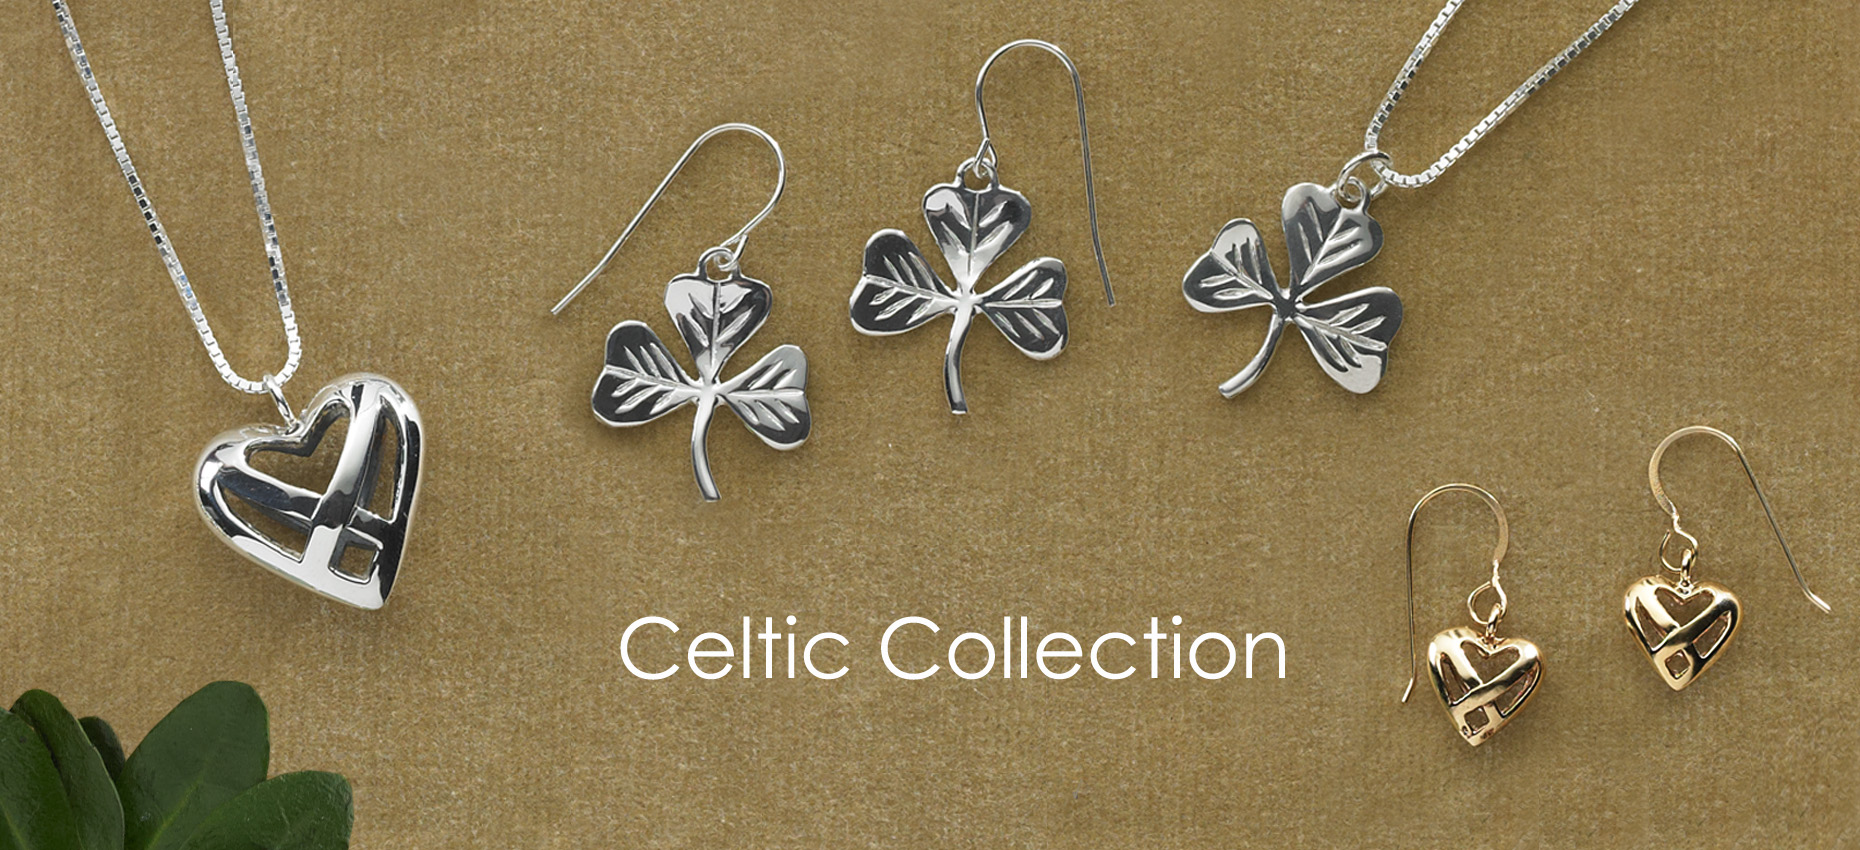 celtic-collection.jpg